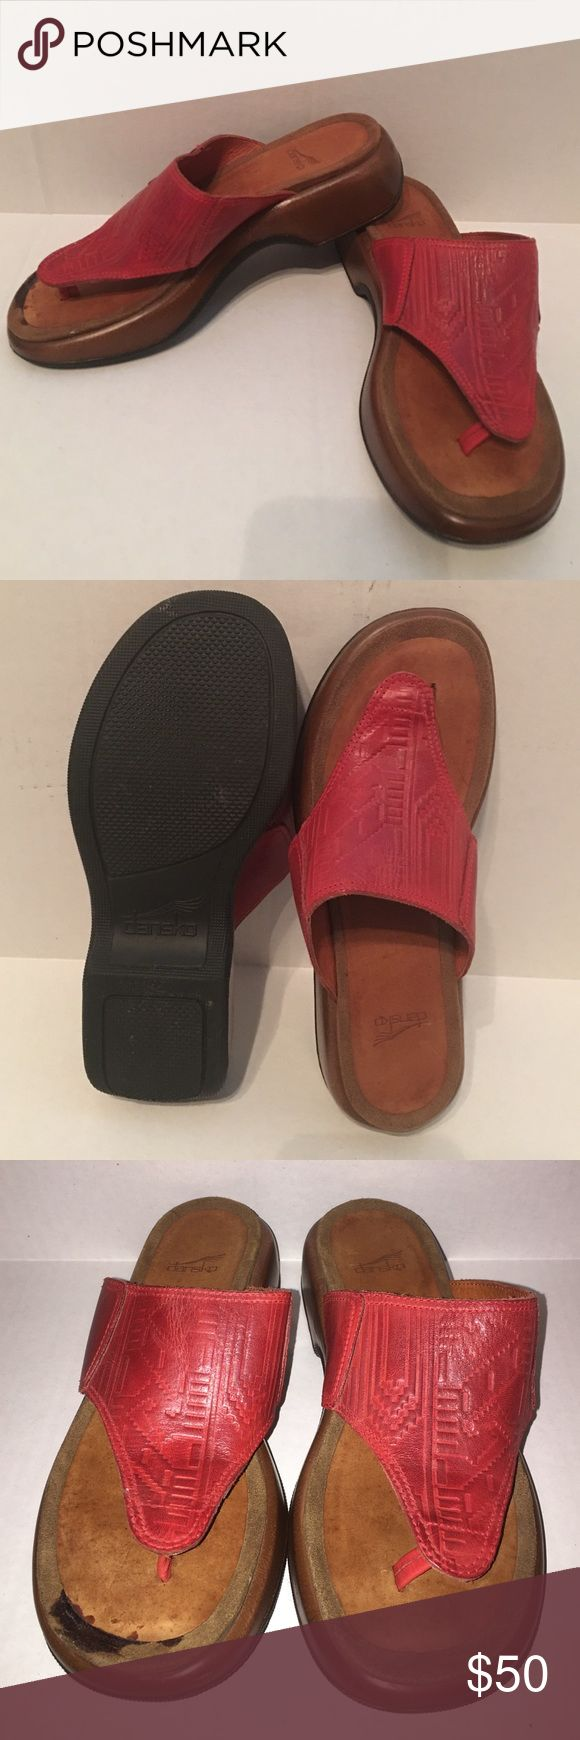 🚨sale🚨Dansko sandals 40 Pre owned Dansko sandals in great shape! The leather is tooled! The soles are in great shape! The right shoe does have a dark stain from glue as seen in the pictures. Size 40.  Smoke and pet free house 🚨sale ends at midnight Dansko Shoes Sandals